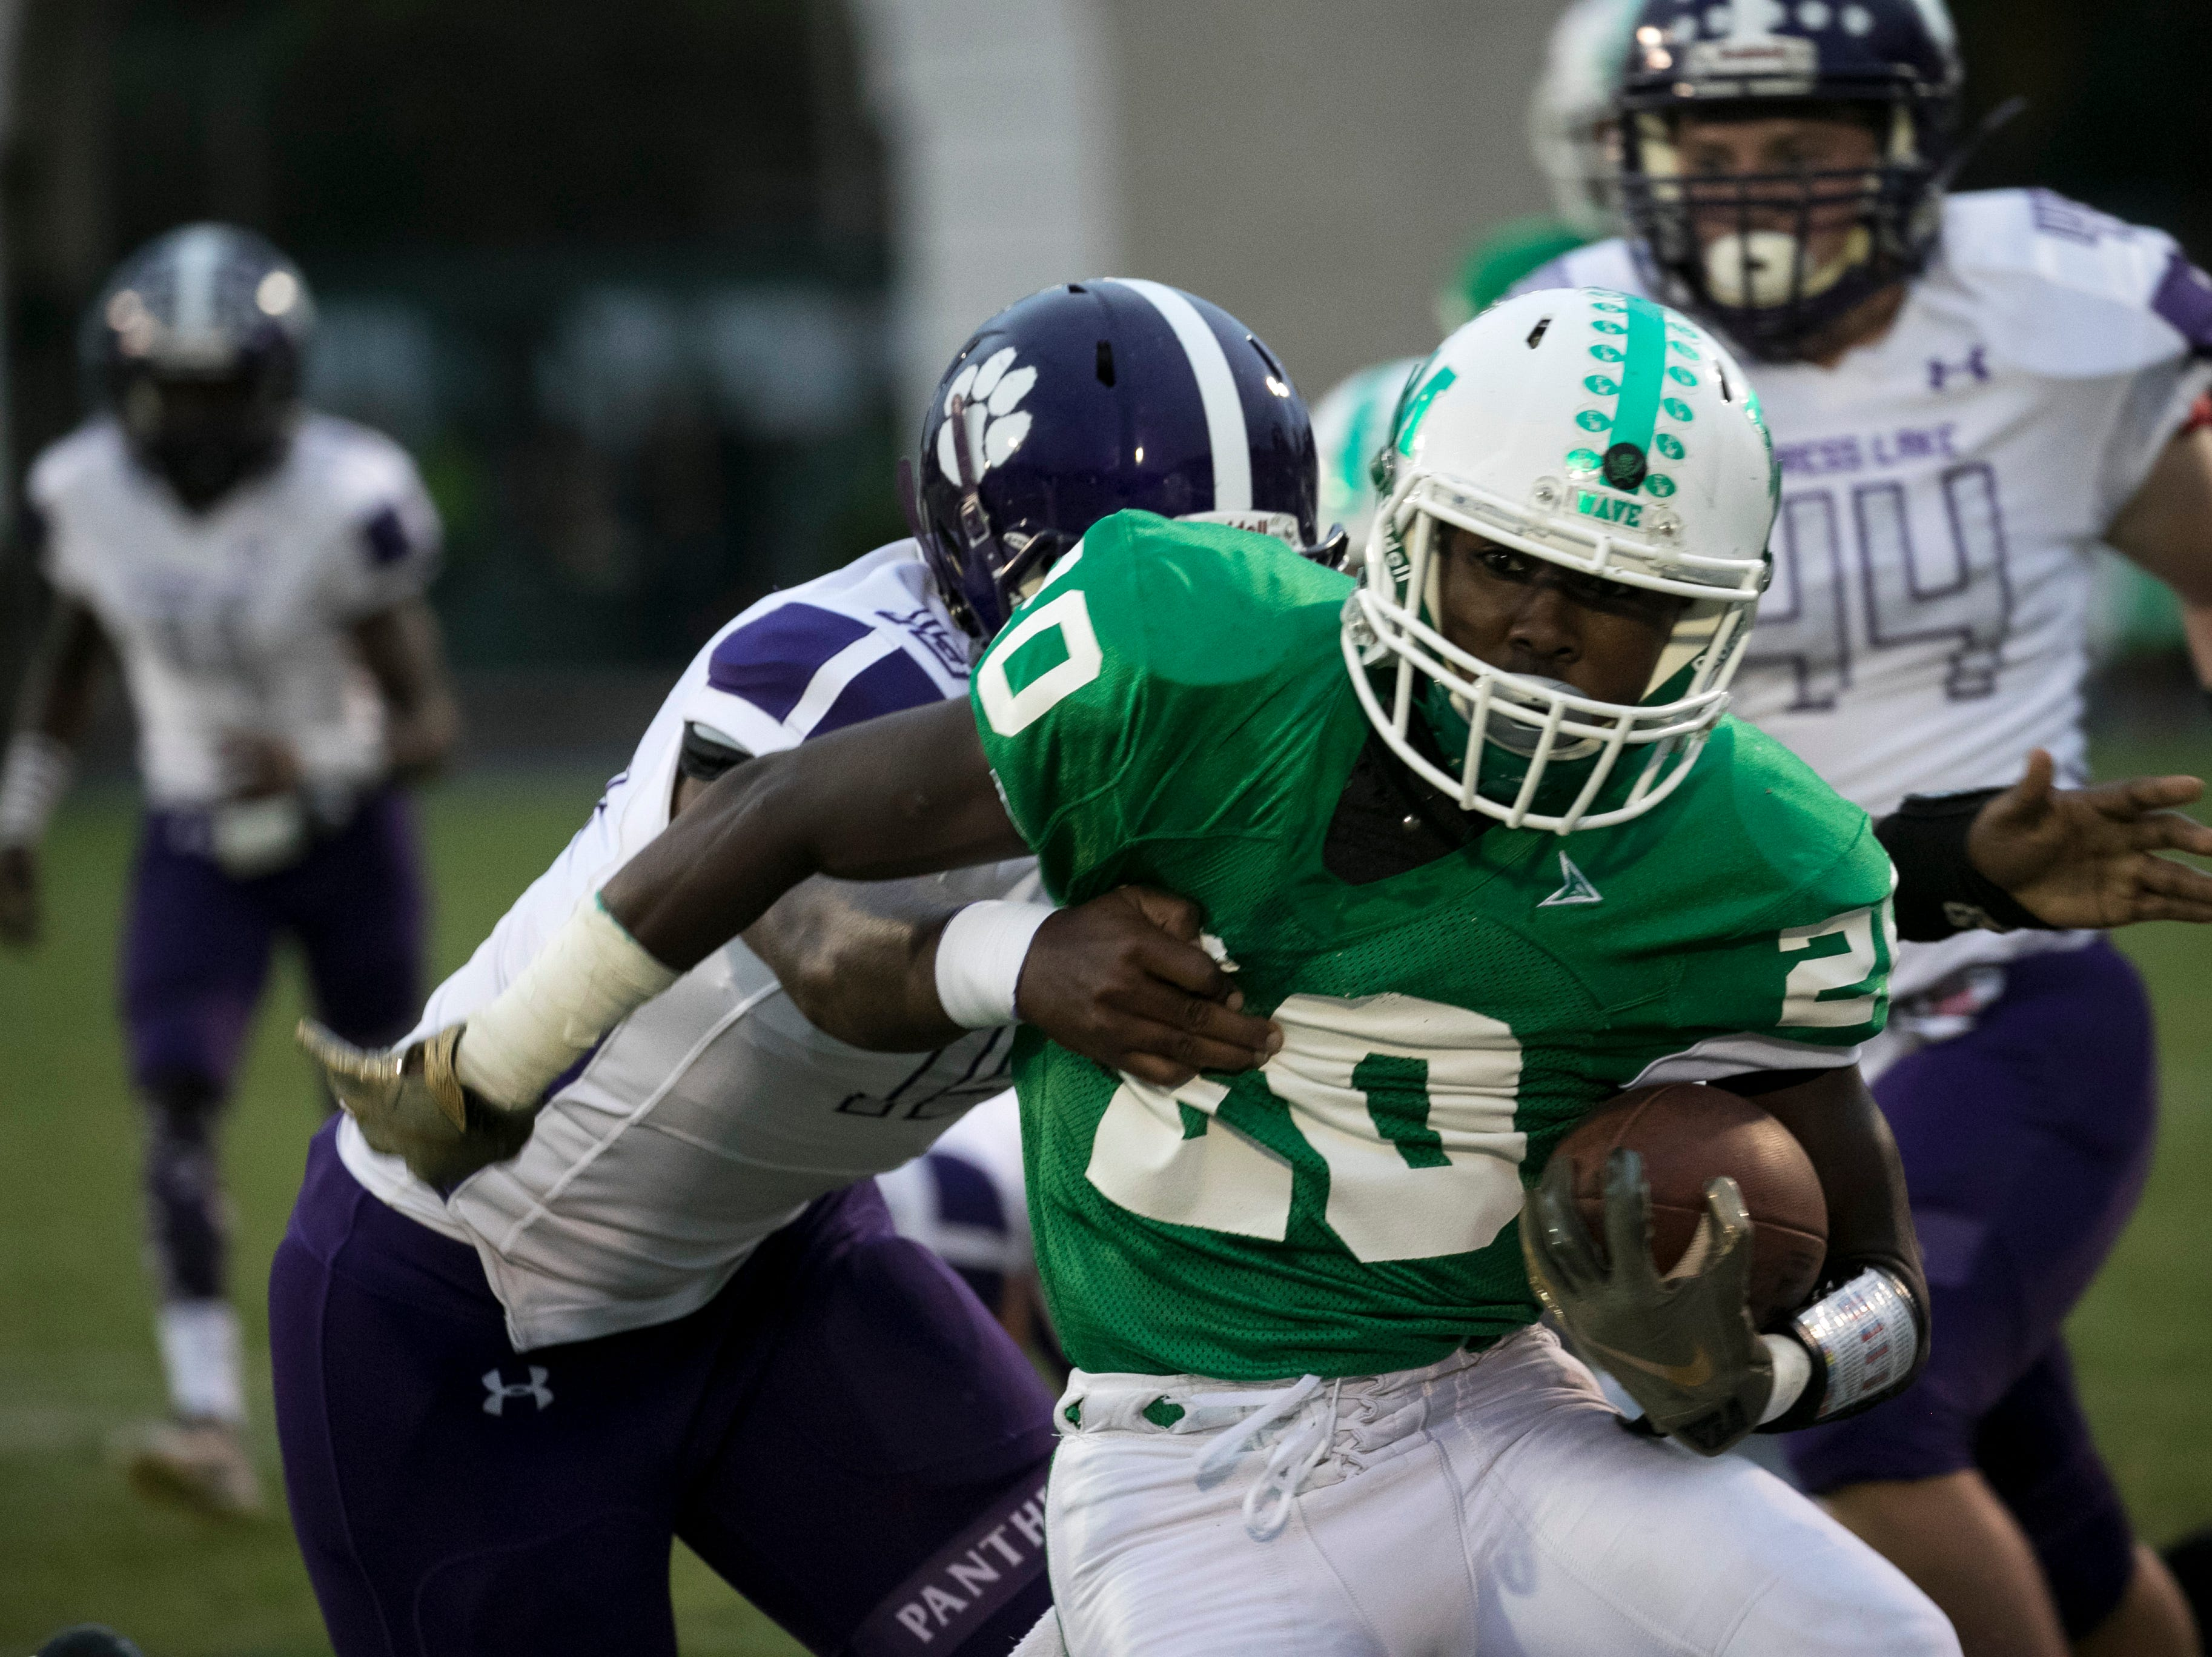 Milan Tucker of Fort Myers is tackled by Cypress Lake's Darren Tobias on Friday night, September 7, 2018, at Fort Myers High School.